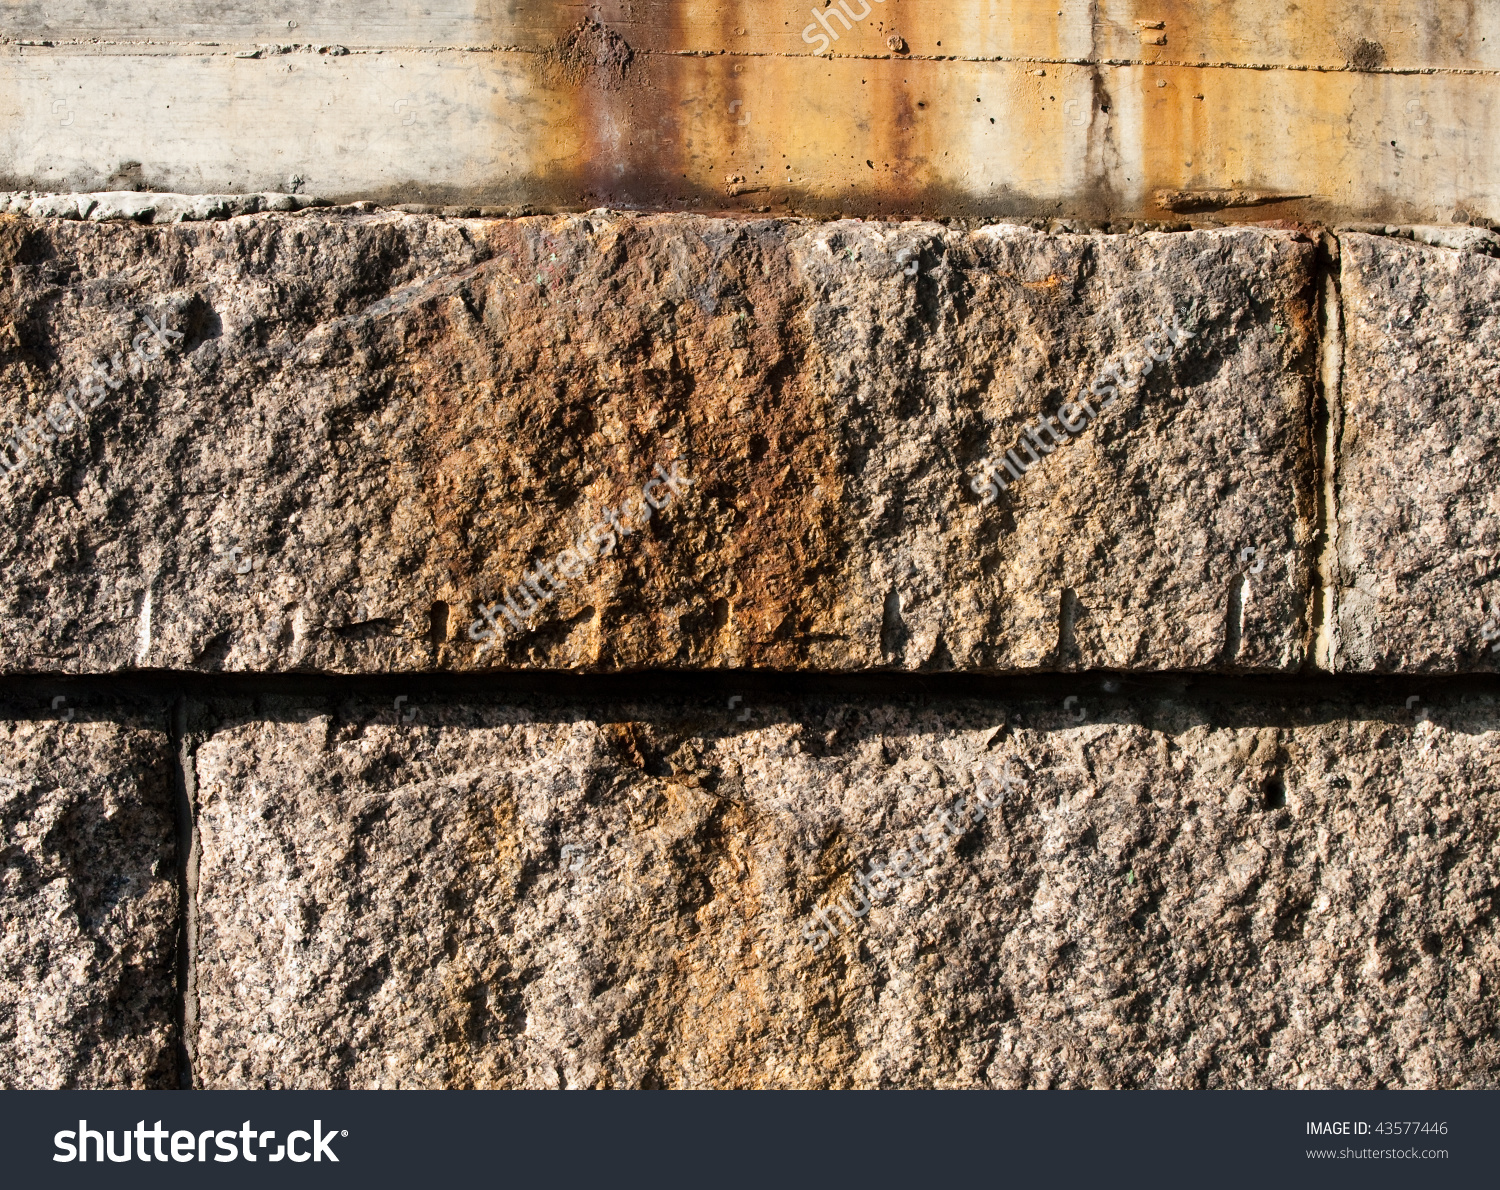 Closeup Photograph Of Cut /Quarried Granite Rock Texture. Used In.